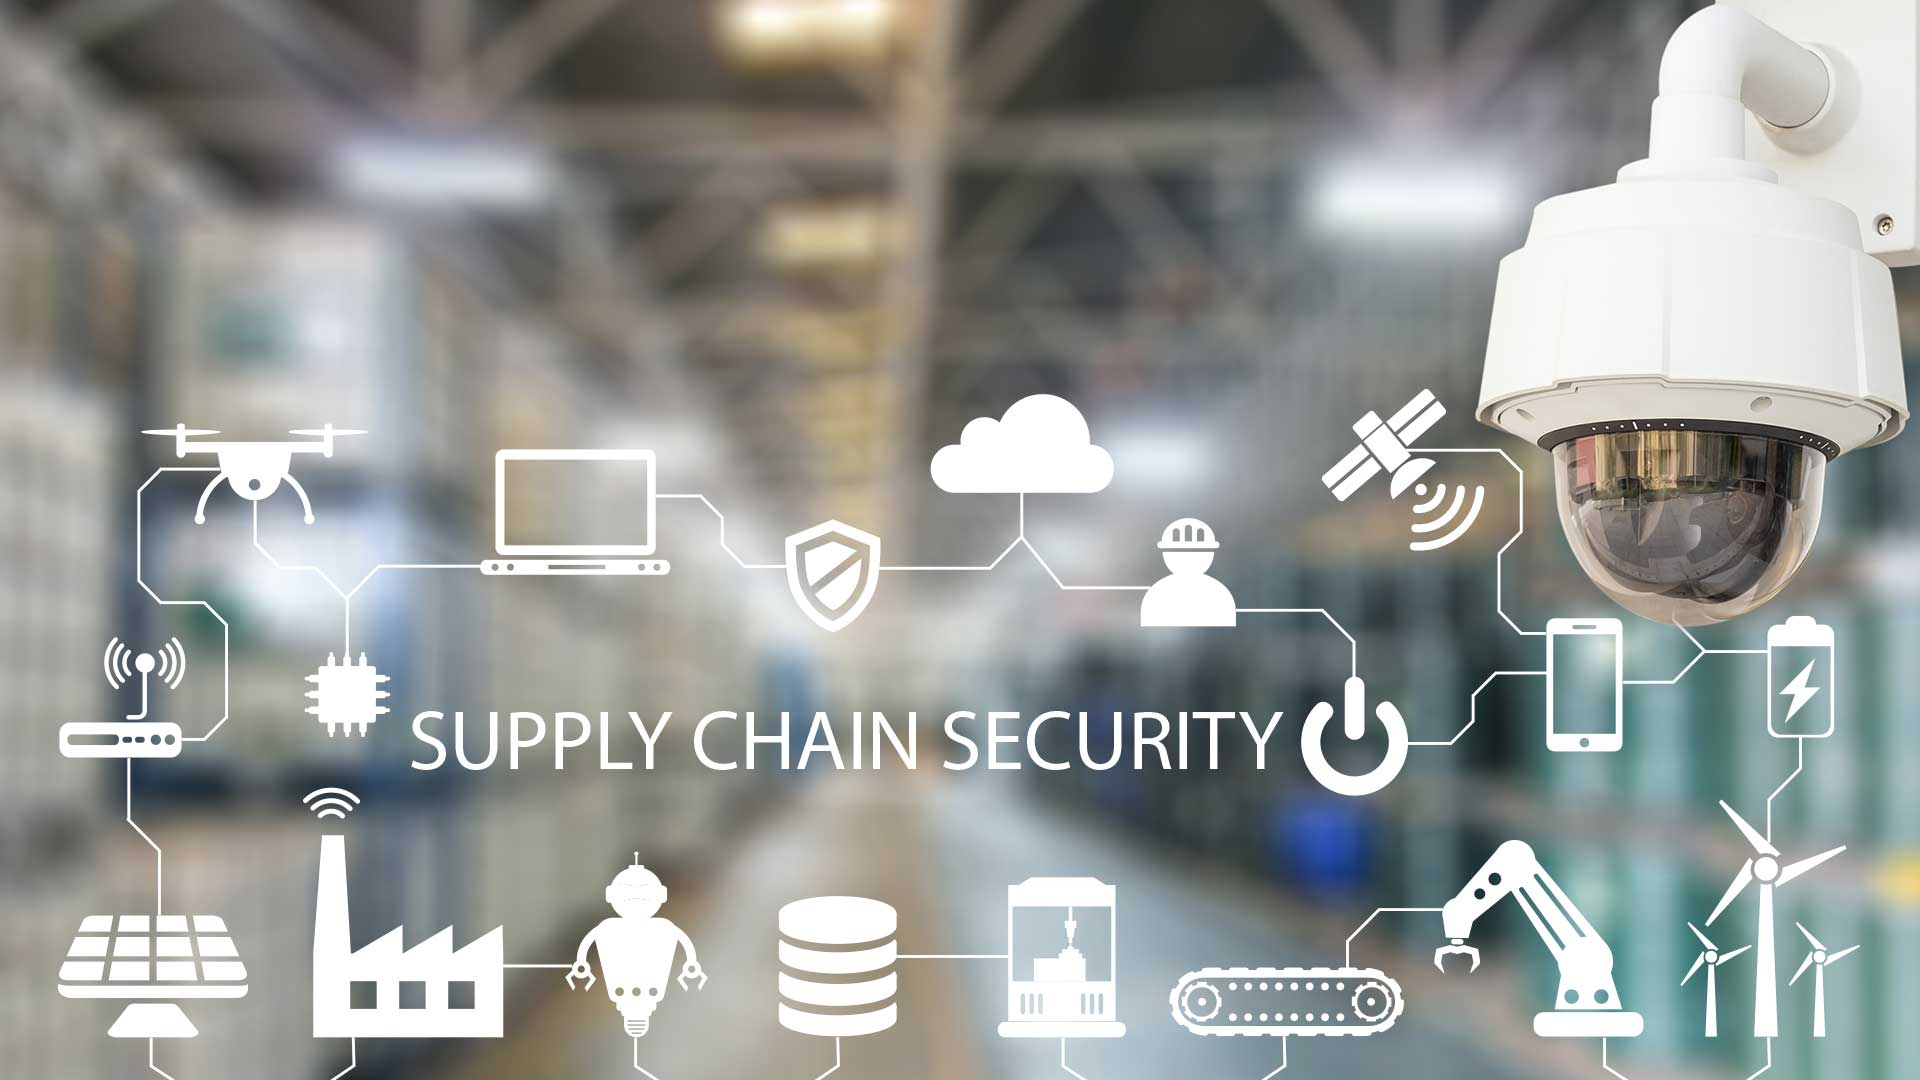 Supply Chain Security Market Thriving At A Tremendous Growth | Sensitech, Orbcomm, Testo